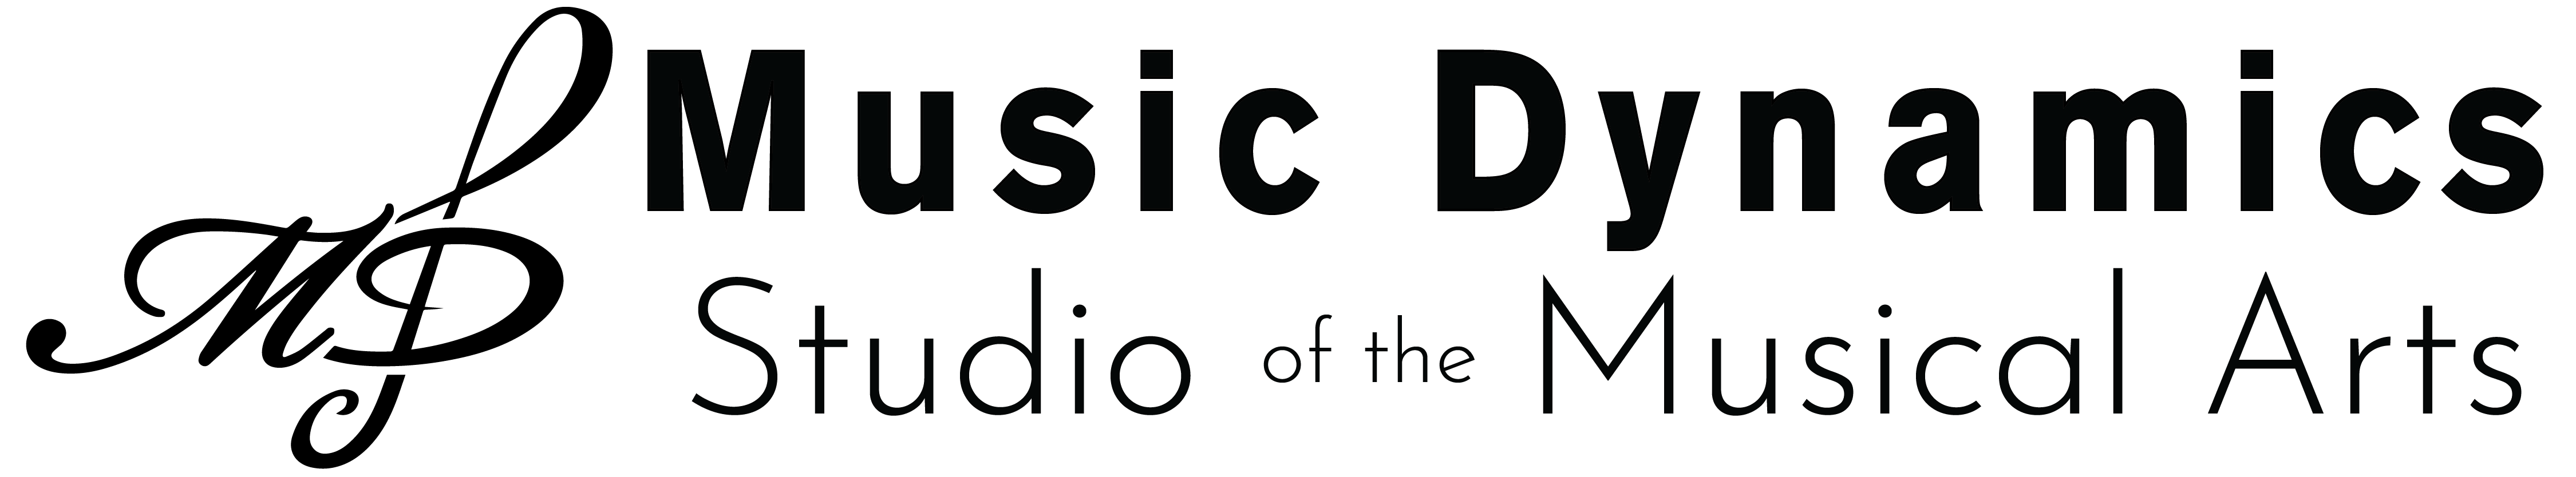 Music Dynamics Studio of the Musical Arts